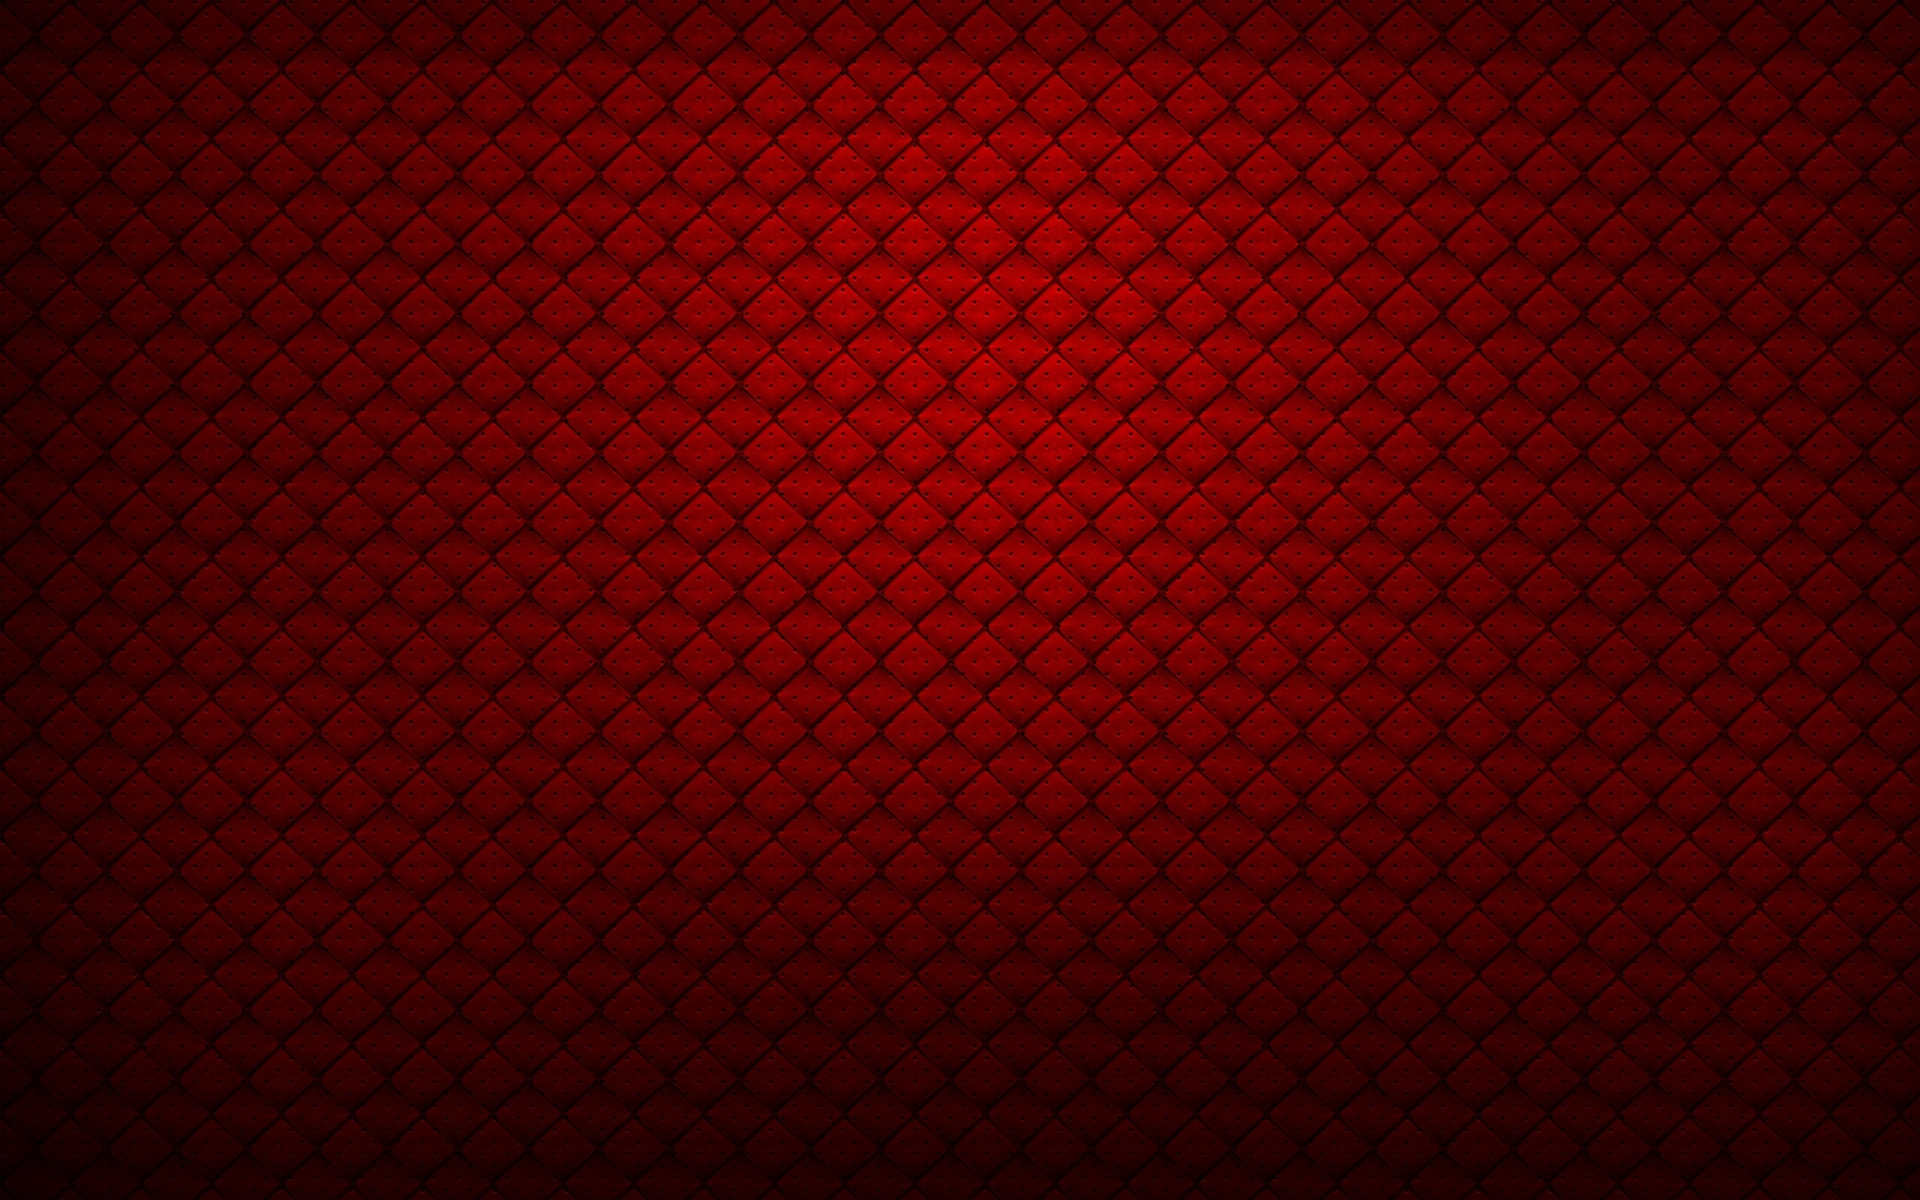 red wallpaper Awesome Cover High Quality 201 Backgrounds